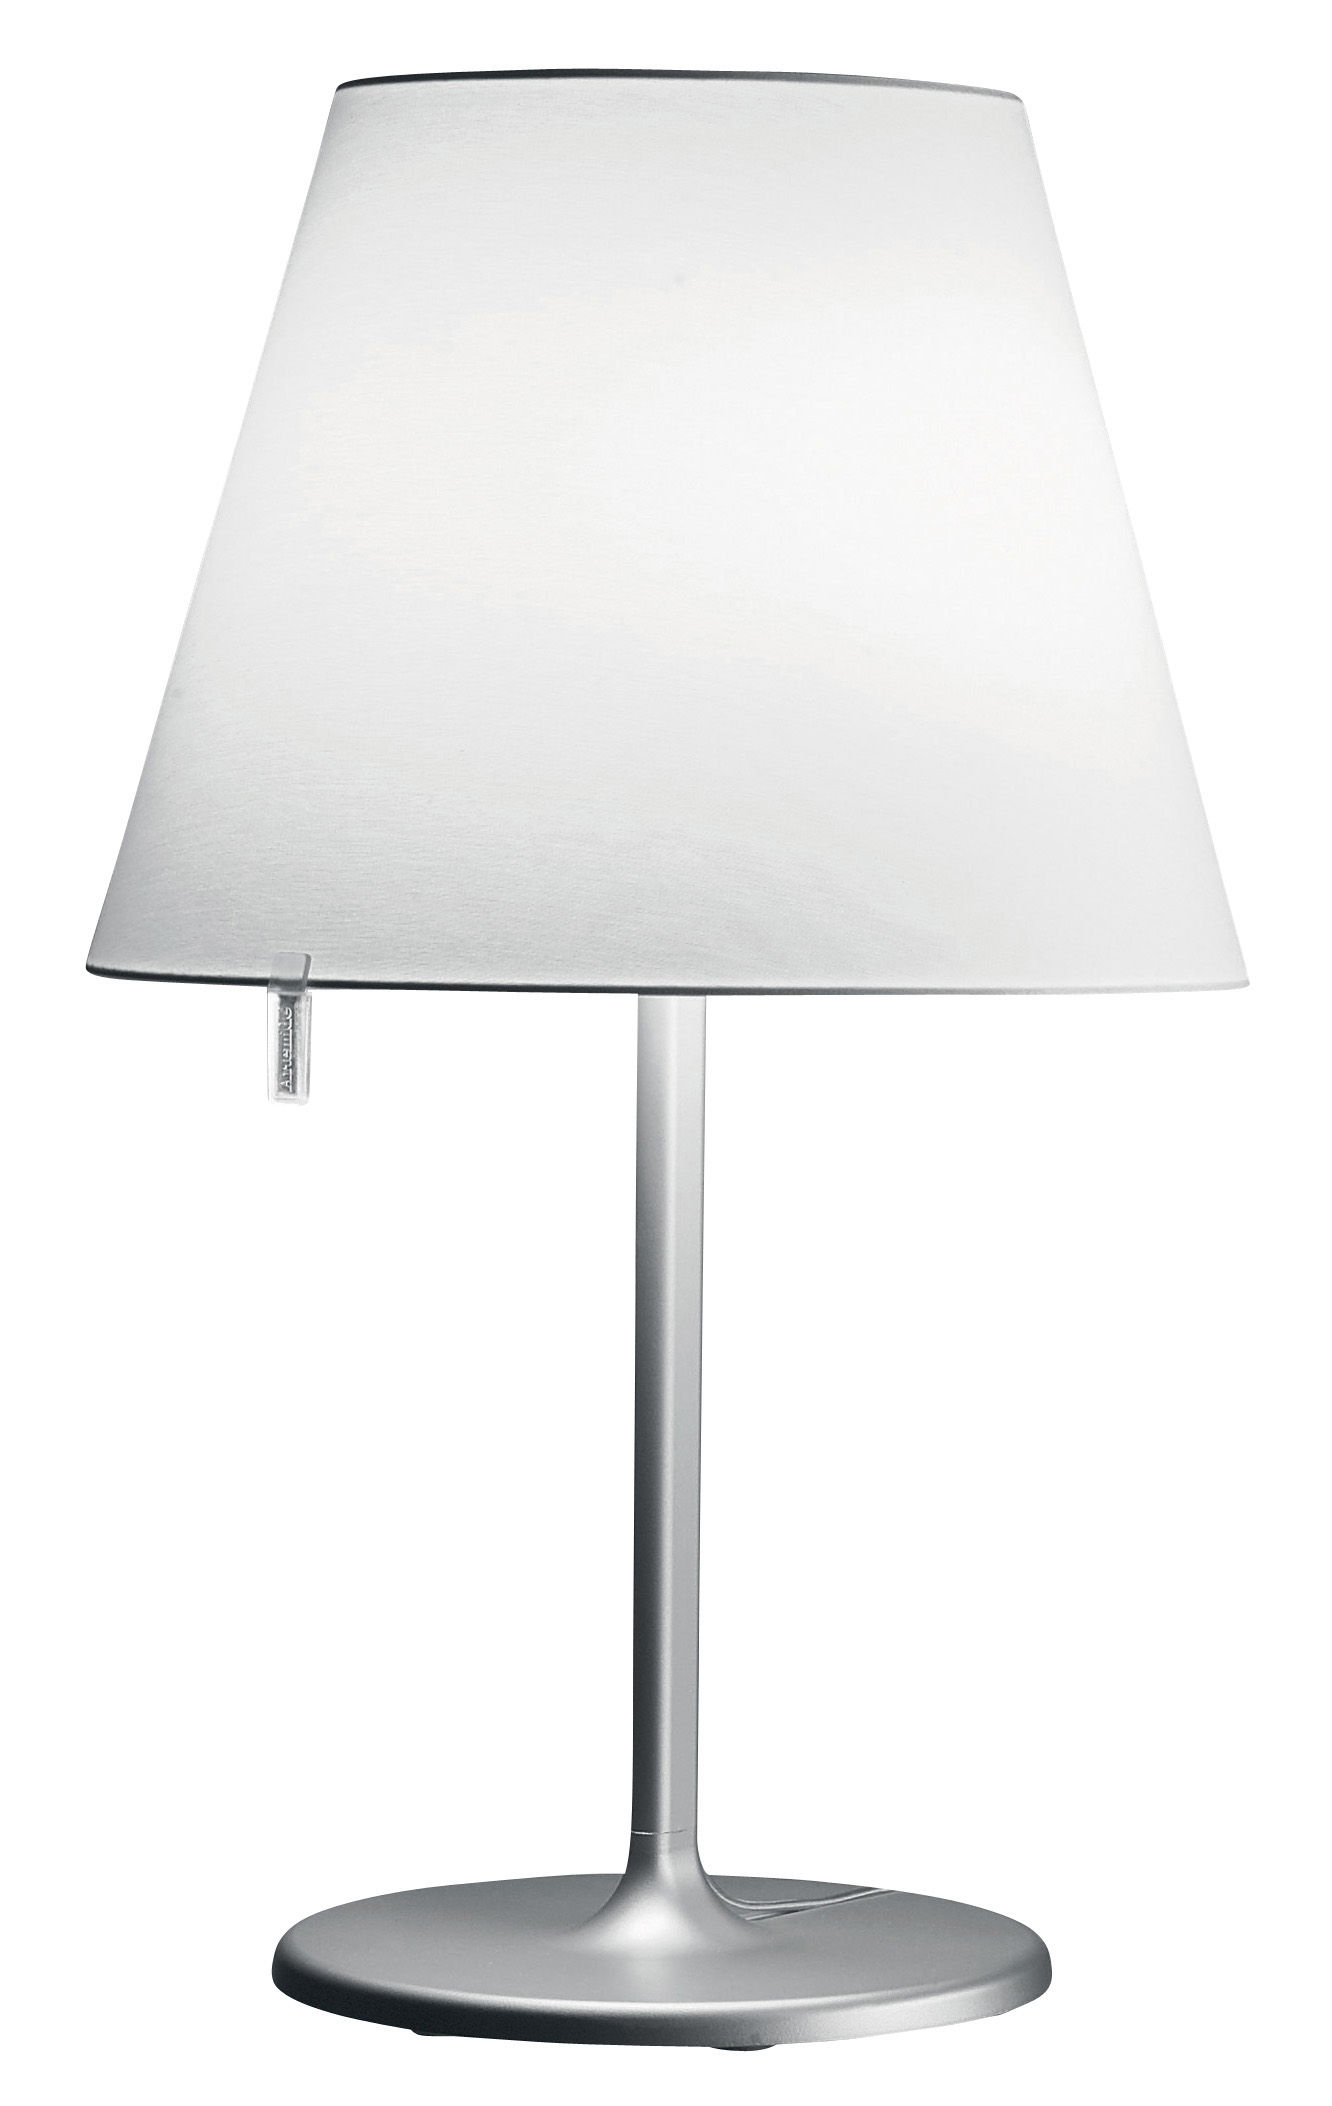 Lampe Artemide Melampo Tavolo Table Lamp By Artemide